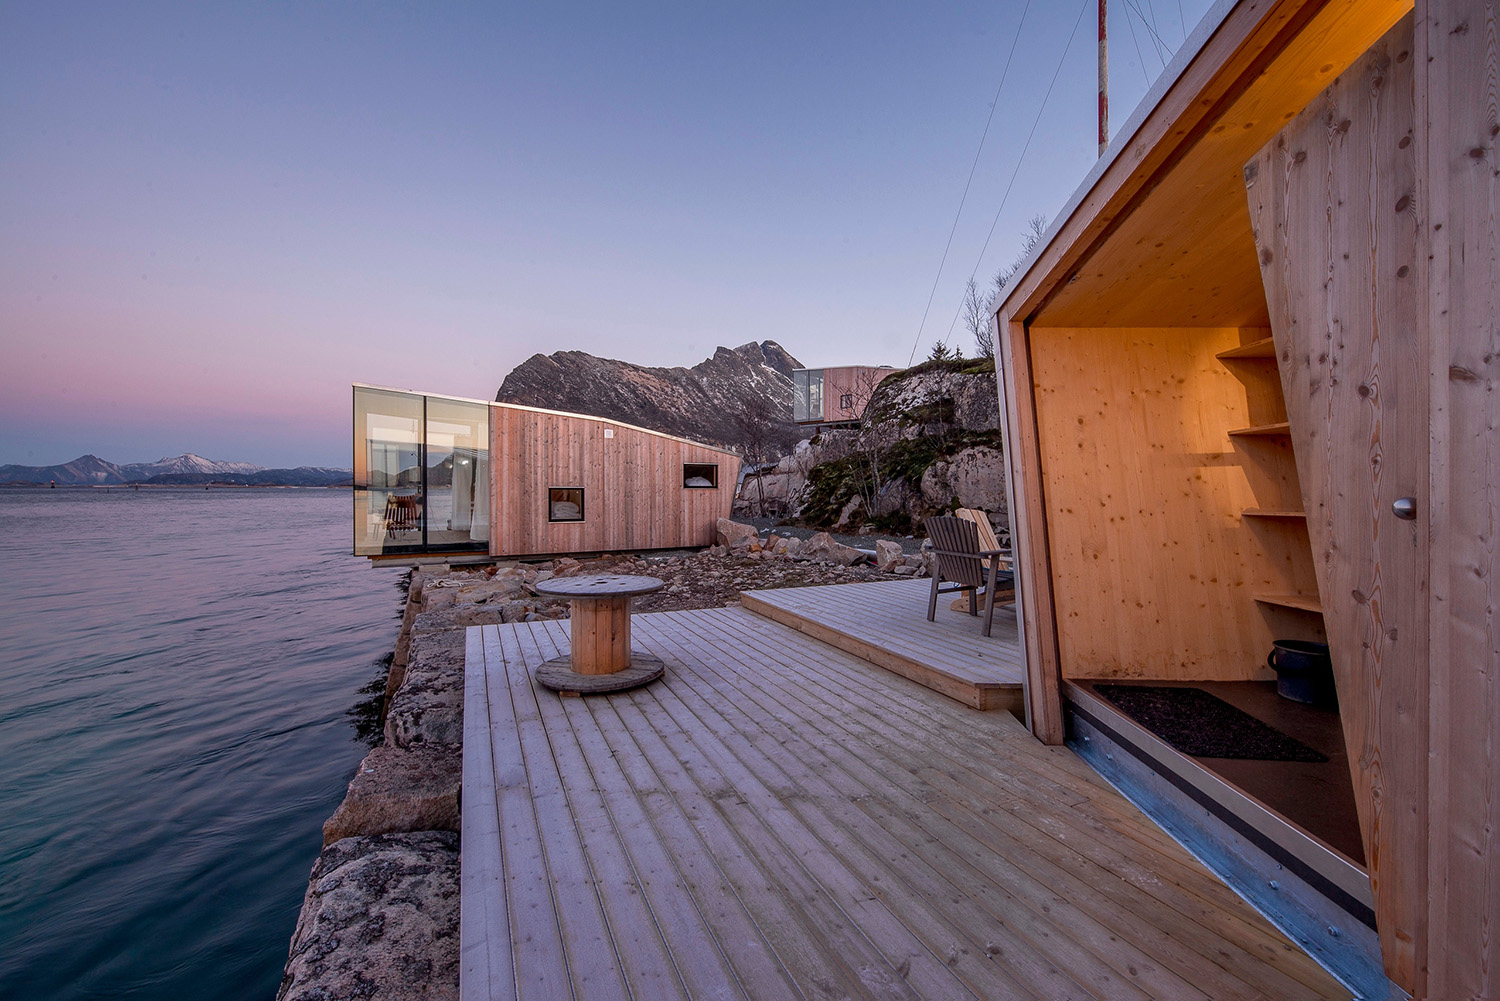 The magic Manshausen Island with it's celebrated cabins